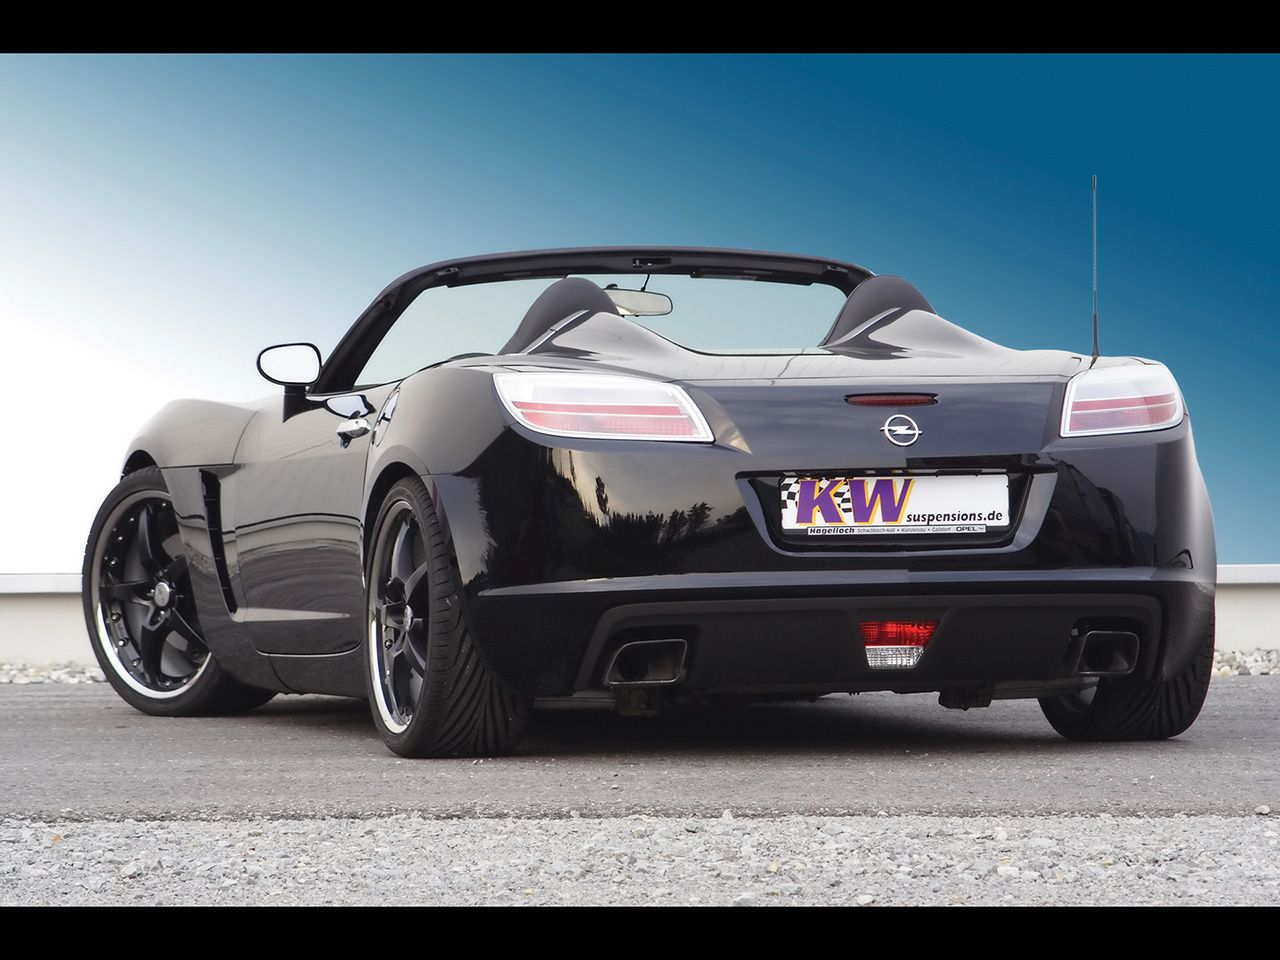 Opel Gt With Kw Coilover Suspension V Rear Angle Opel Saturn Sky Pontiac Solstice